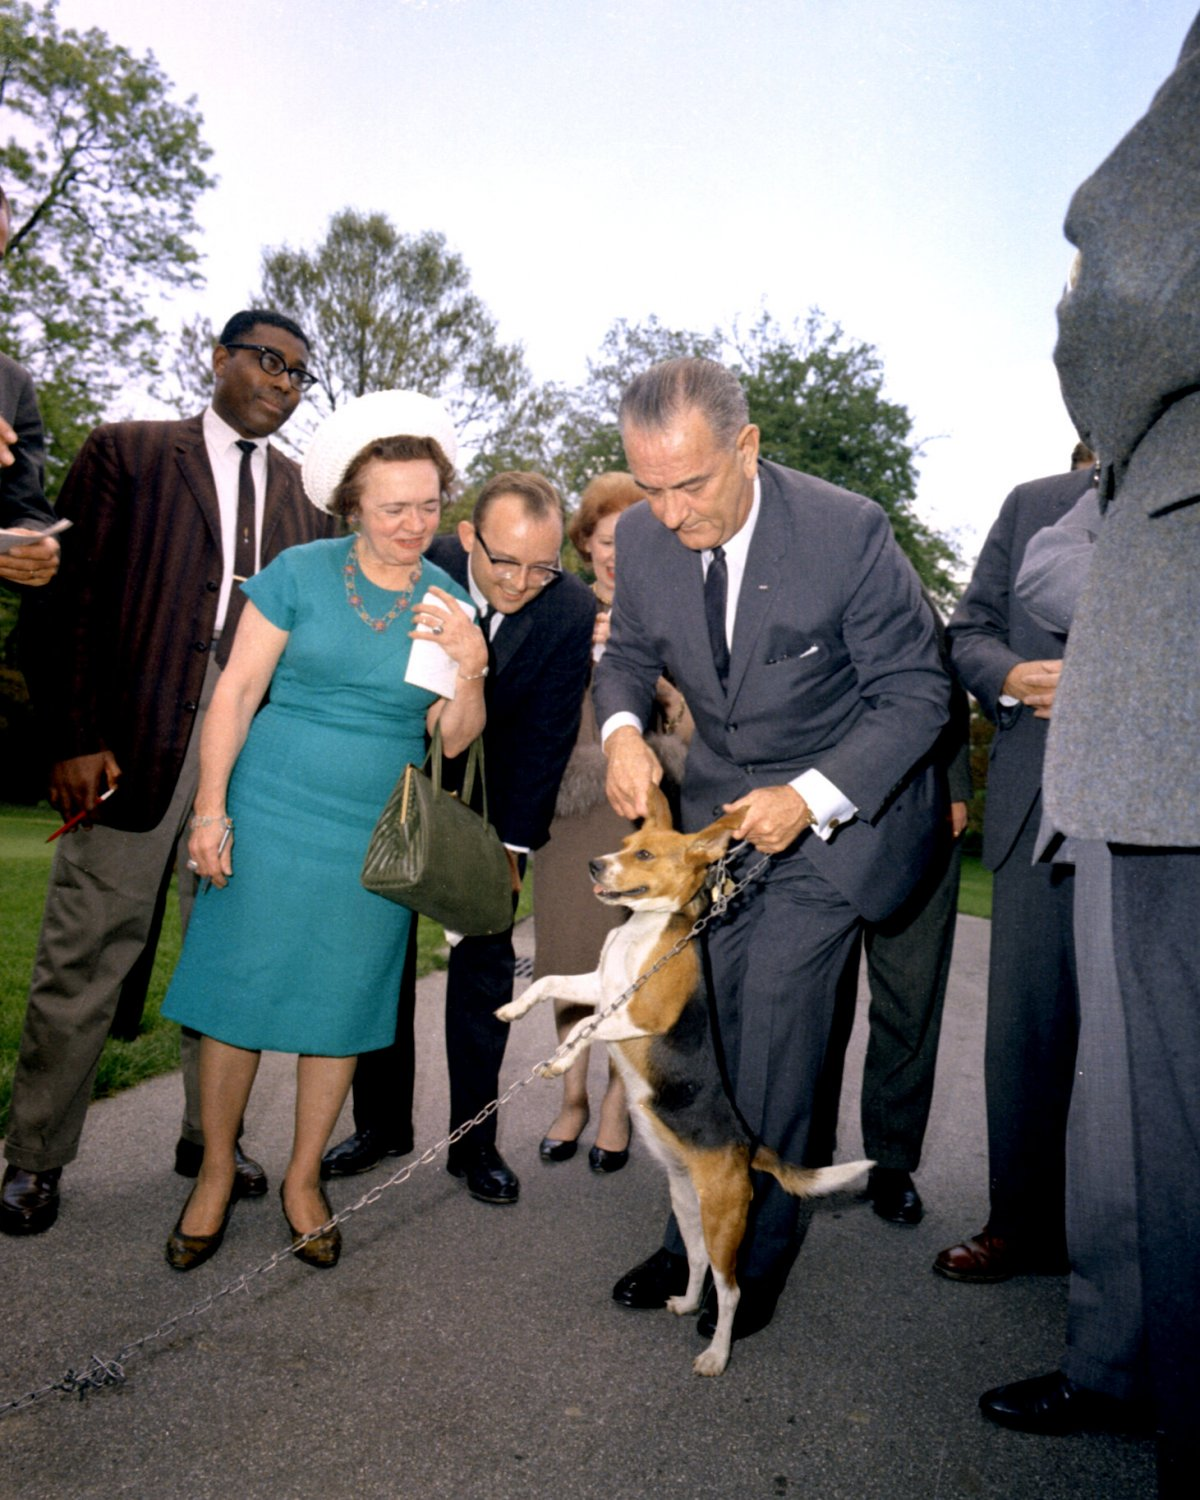 """LYNDON JOHNSON LIFTS HIS DOG """"HIM"""" BY THE EARS IN 1964 - 8X10 PHOTO (ZY-481)"""